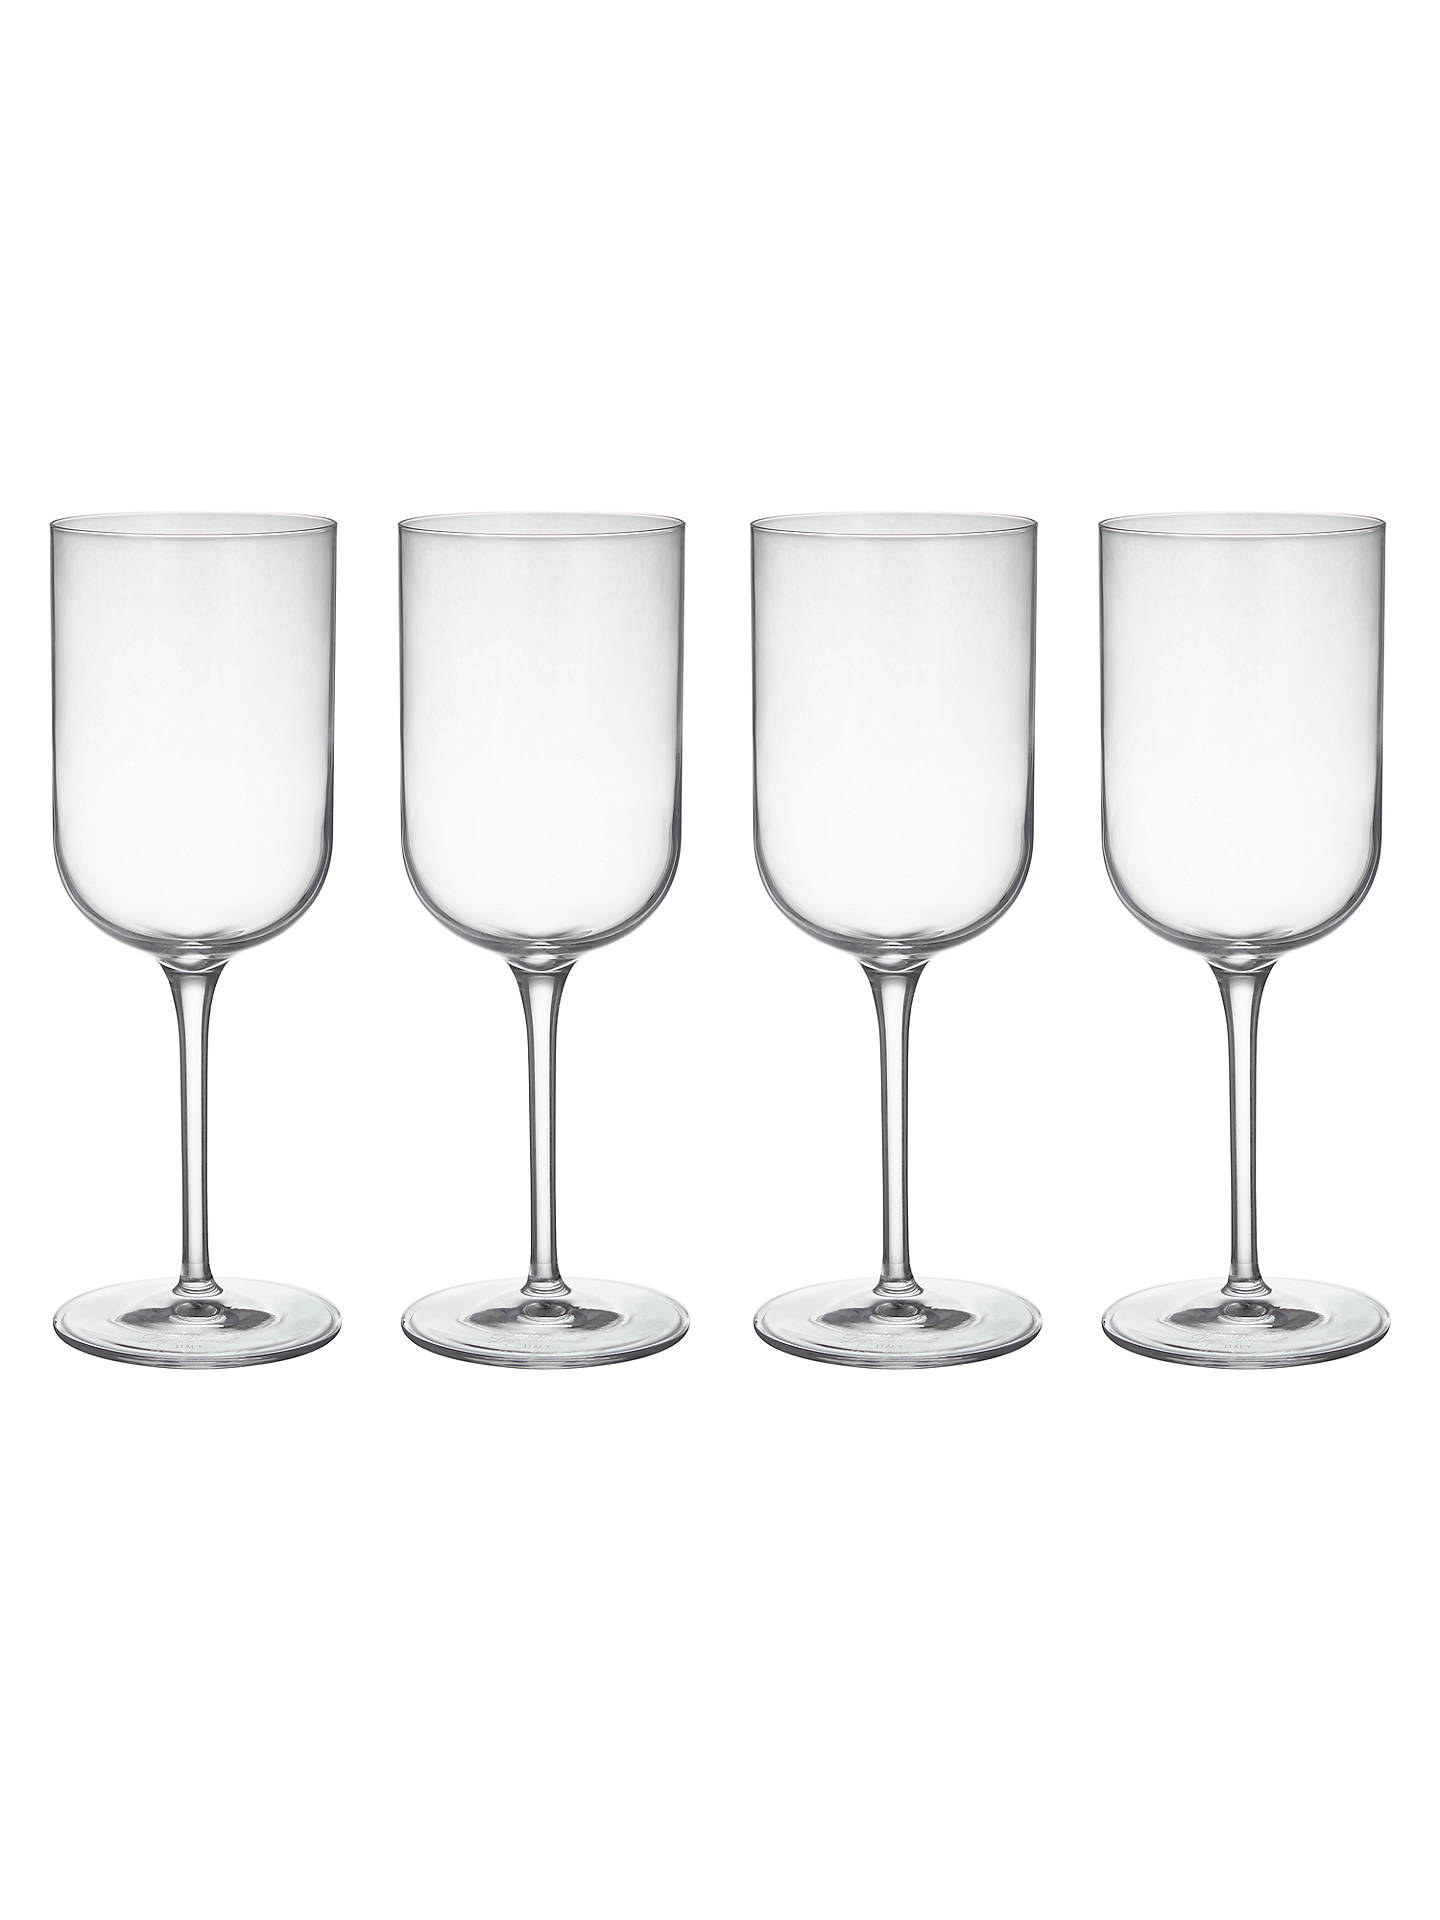 Buy John Lewis Sublime Red Wine Glass, Clear, 400ml, Set of 4 Online at johnlewis.com